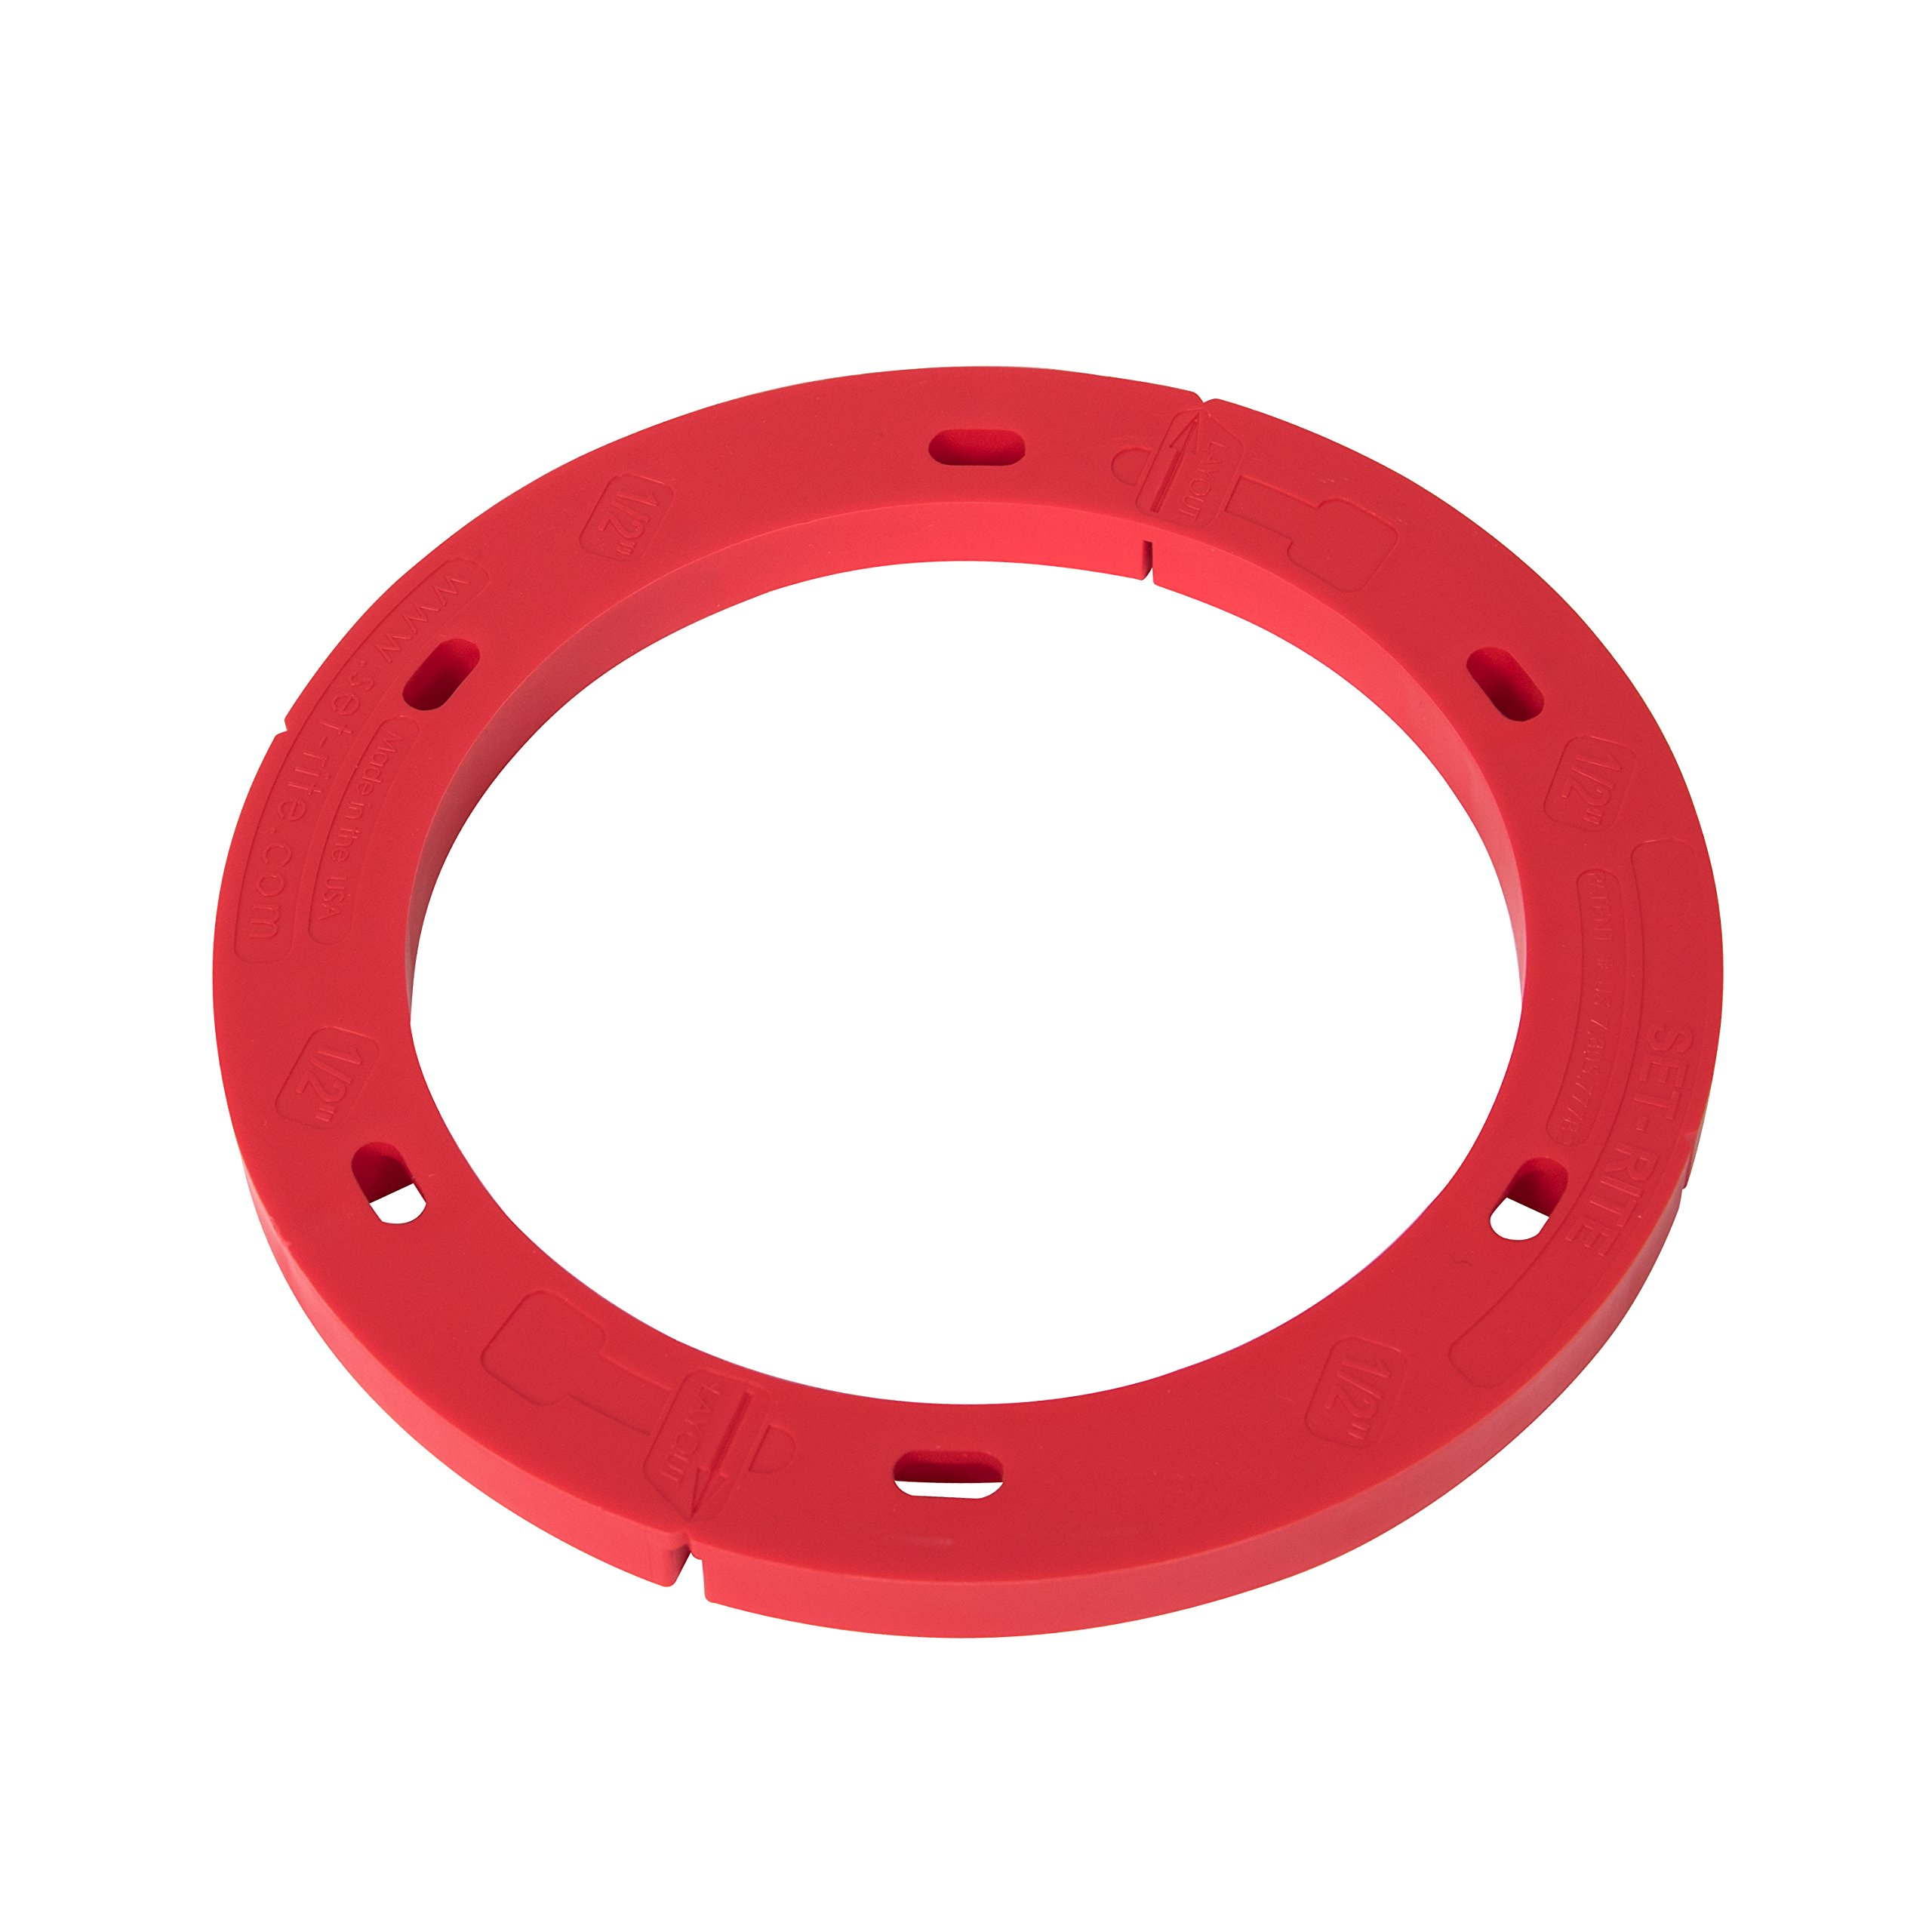 OATEY Set-Rite Toilet Flange Spacer - 1/2'''' Red, used on PVC, ABS, Cast Iron and Stainless Steel